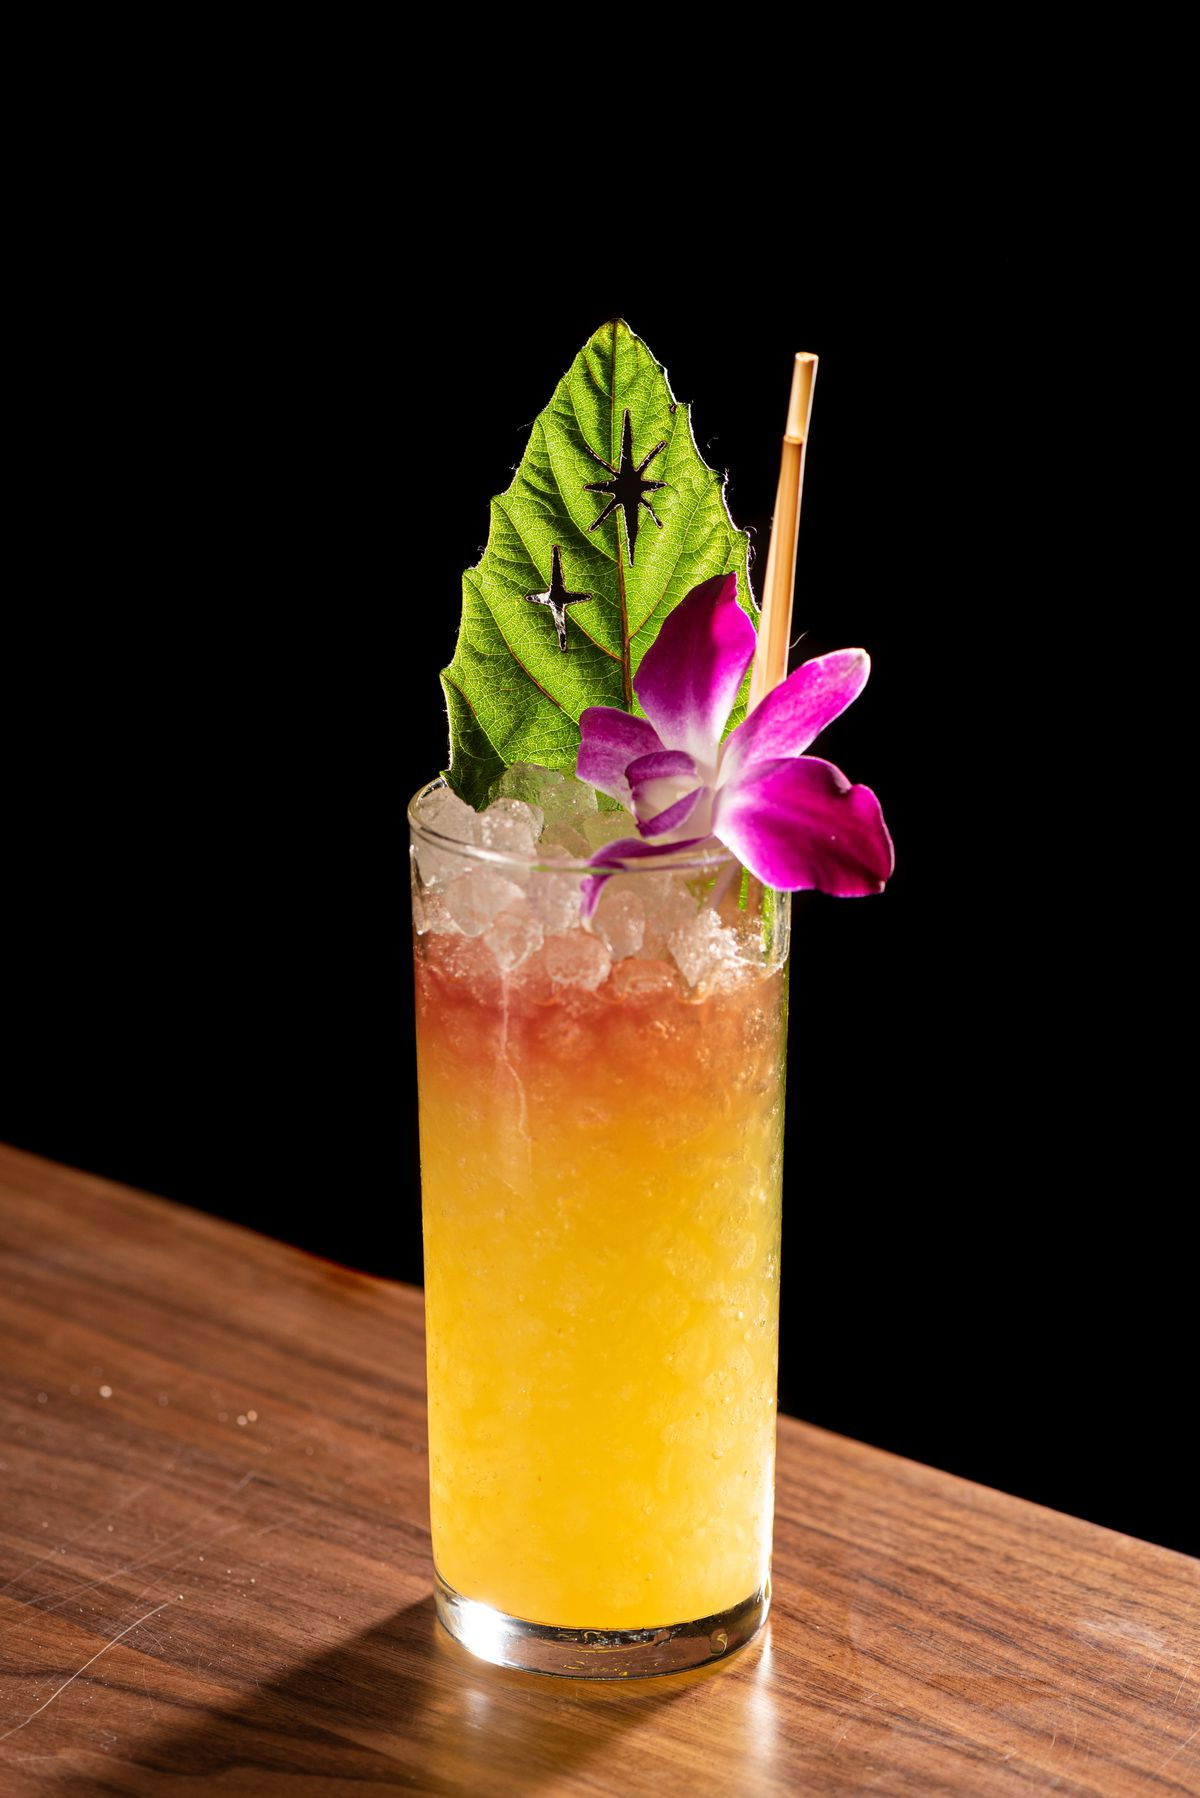 A tall, colorful cocktail in a dark room.